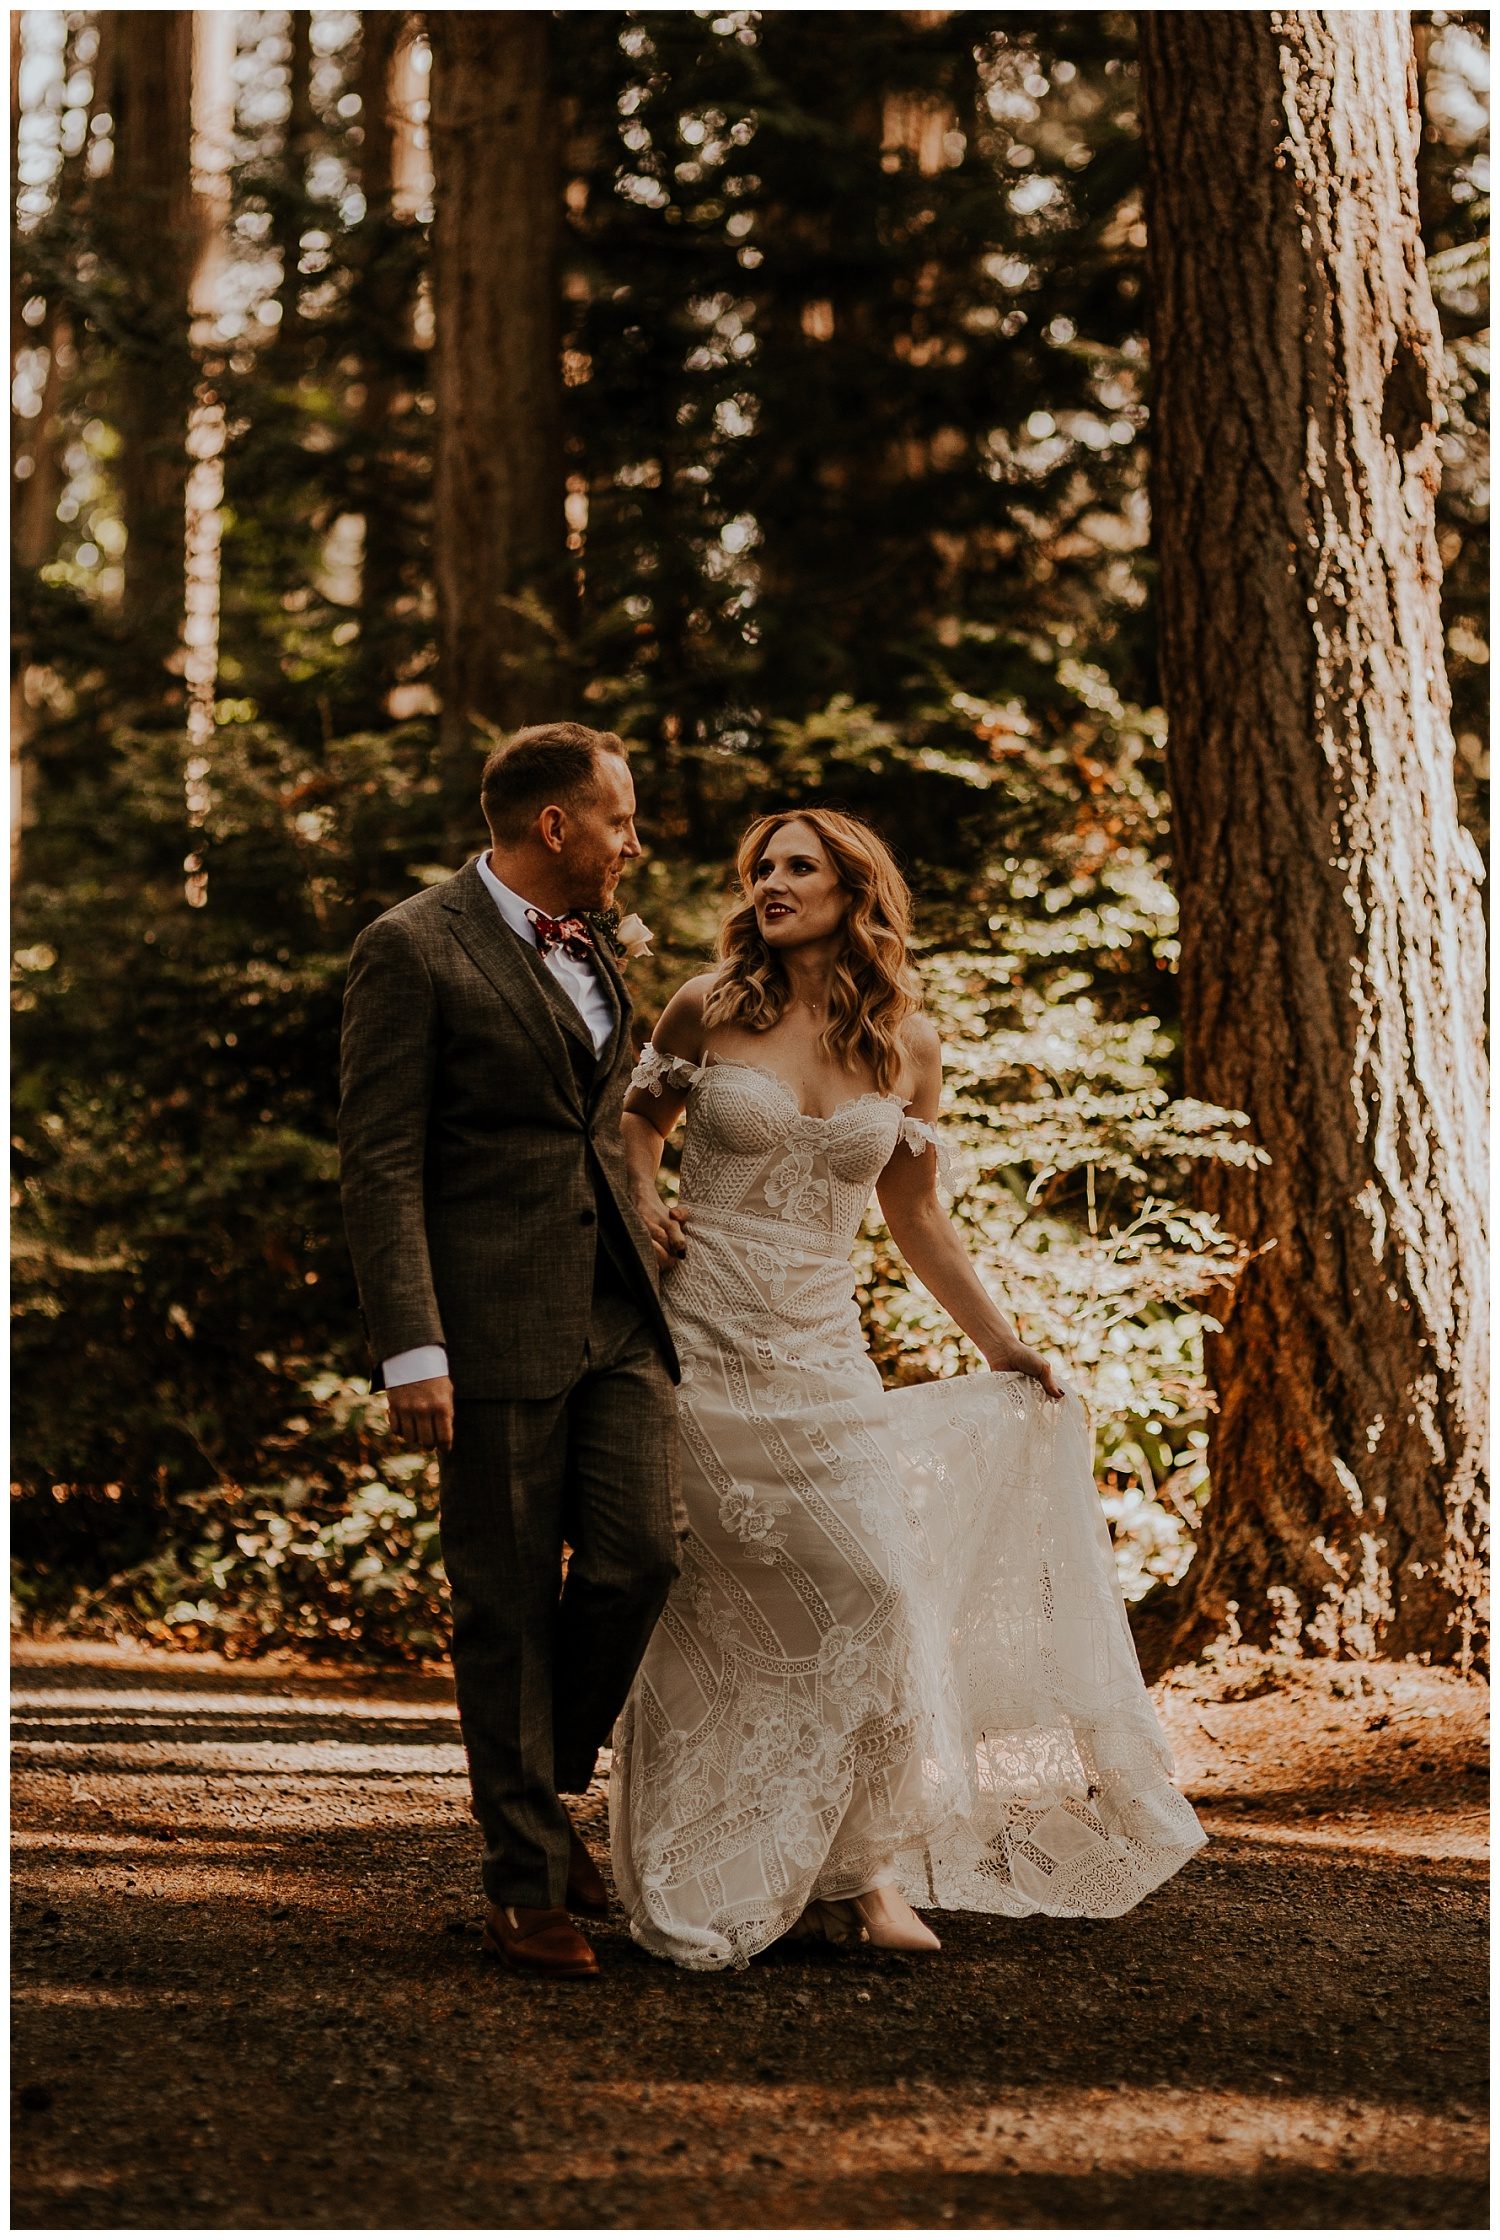 Kitsap Memorial State Park Wedding.Peter Ashley Kitsap State Park Outdoor Wedding Van